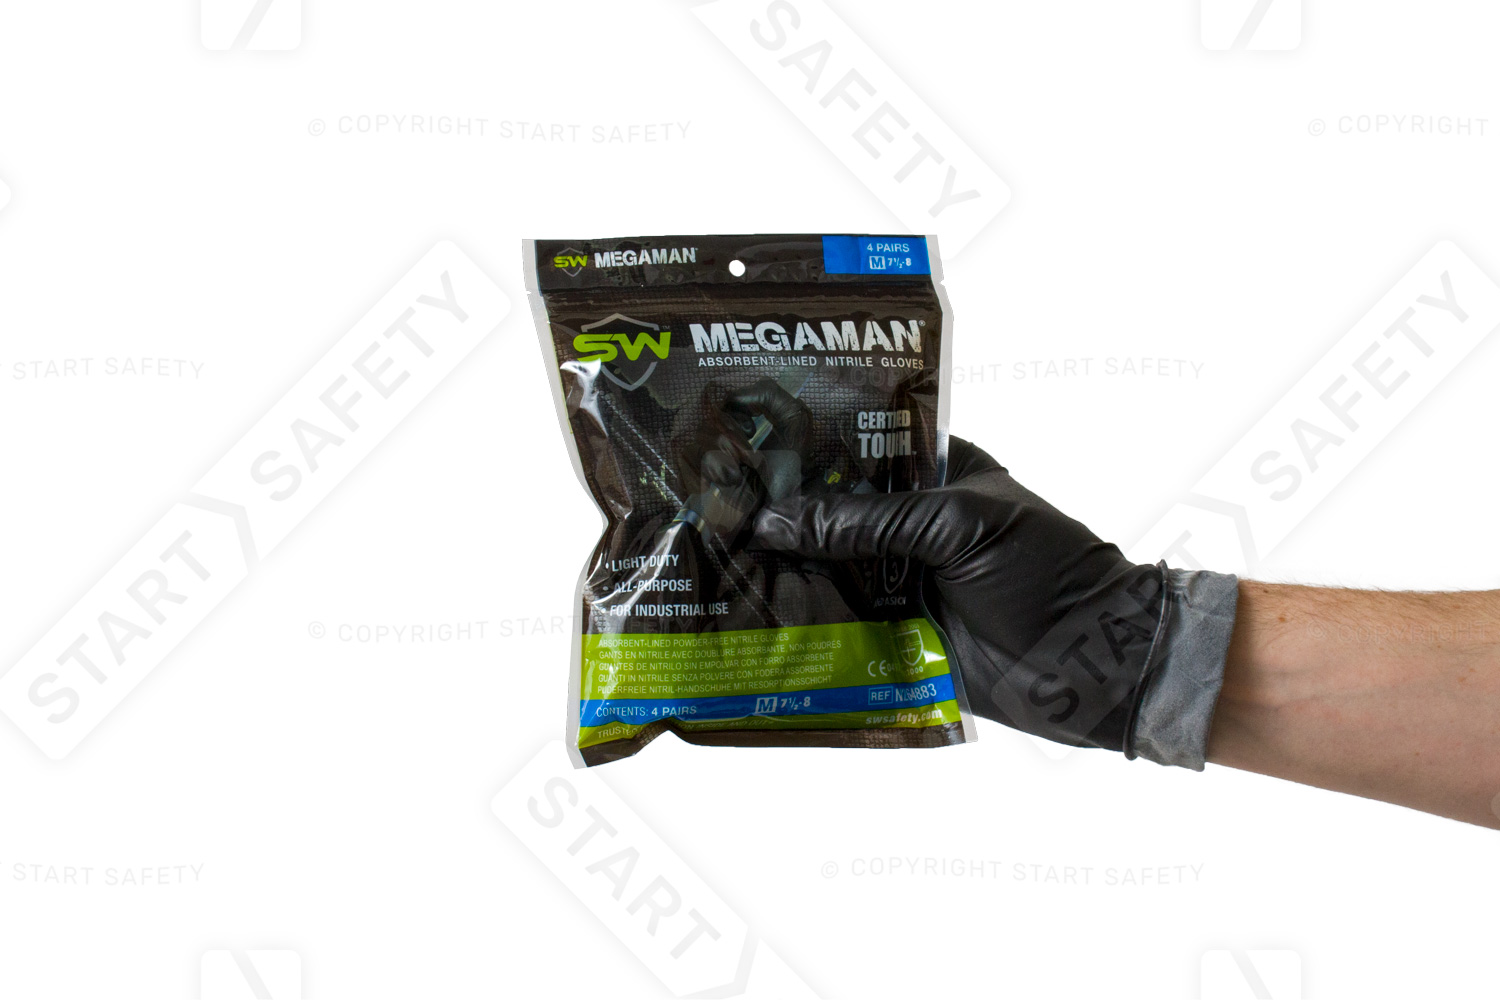 MegaMan glove small pack